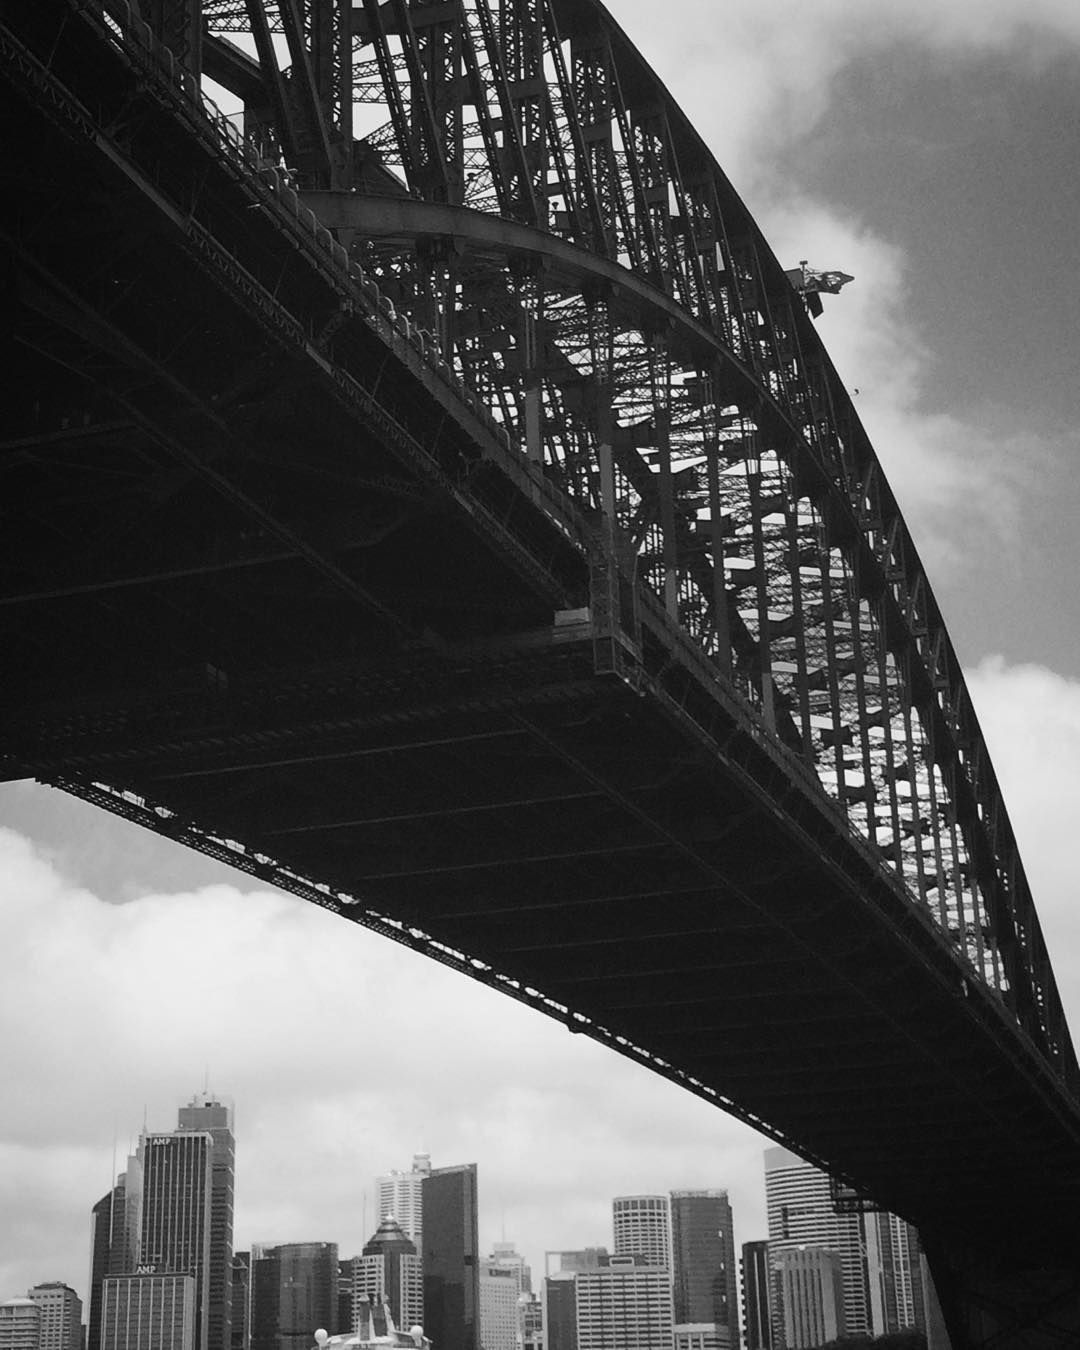 Sydney Harbour Bridge and skyline taken from North Shore. It's an iconic landmark and totally worth the climb even if it does cost you a week's wages to do it!! by lelly_jane http://ift.tt/1NRMbNv